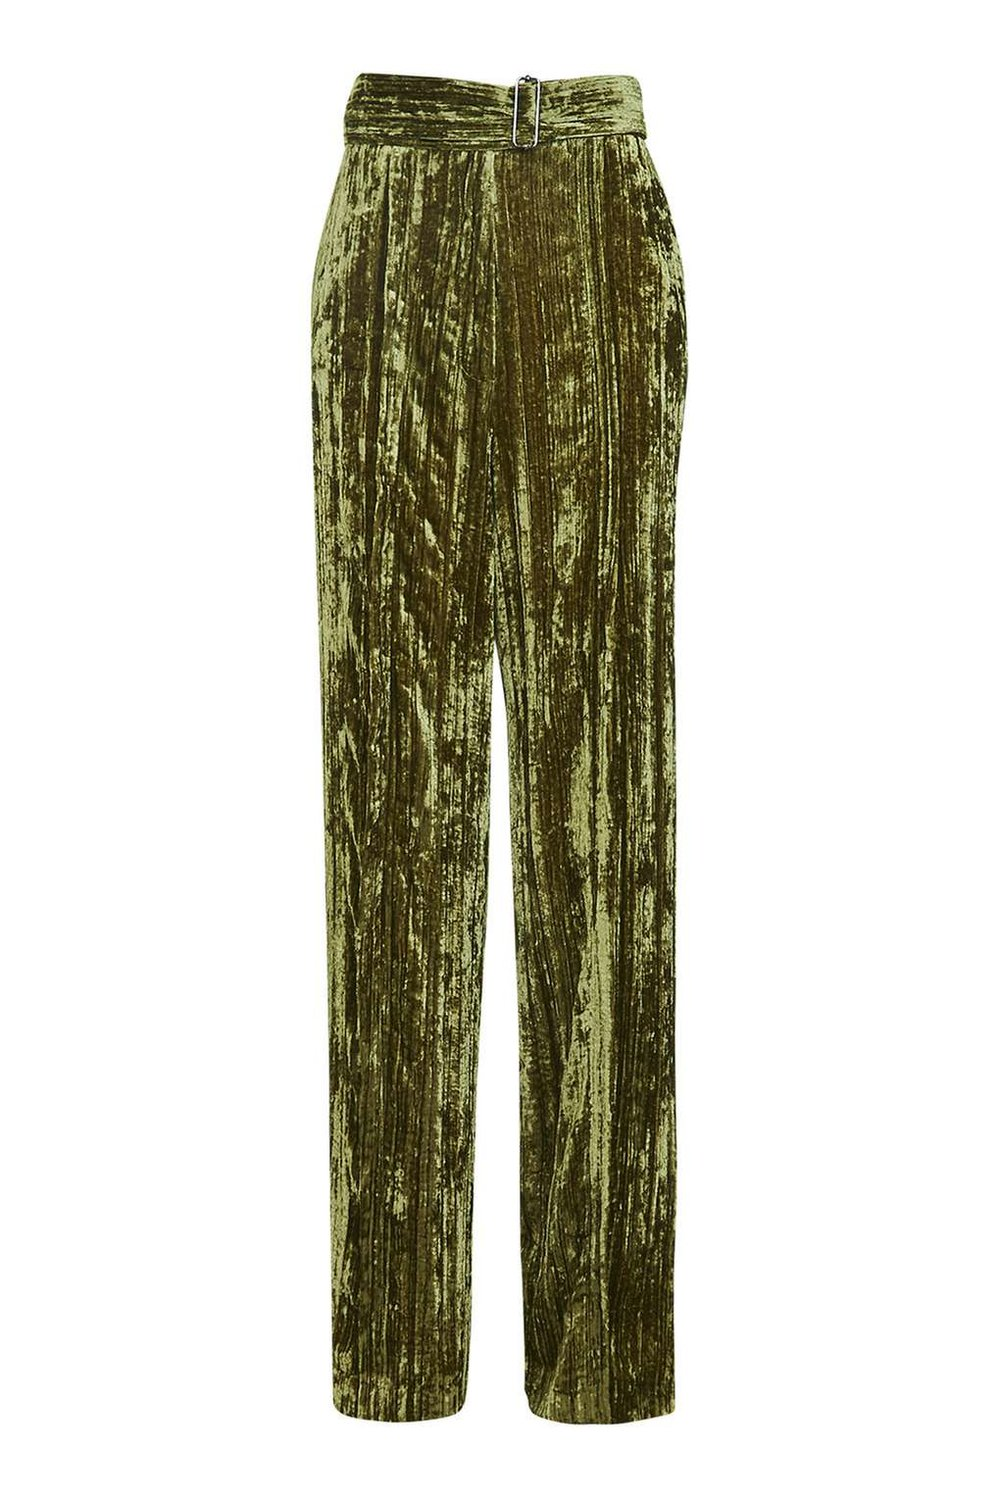 TOPSHOP VELVET GREEN PANTS